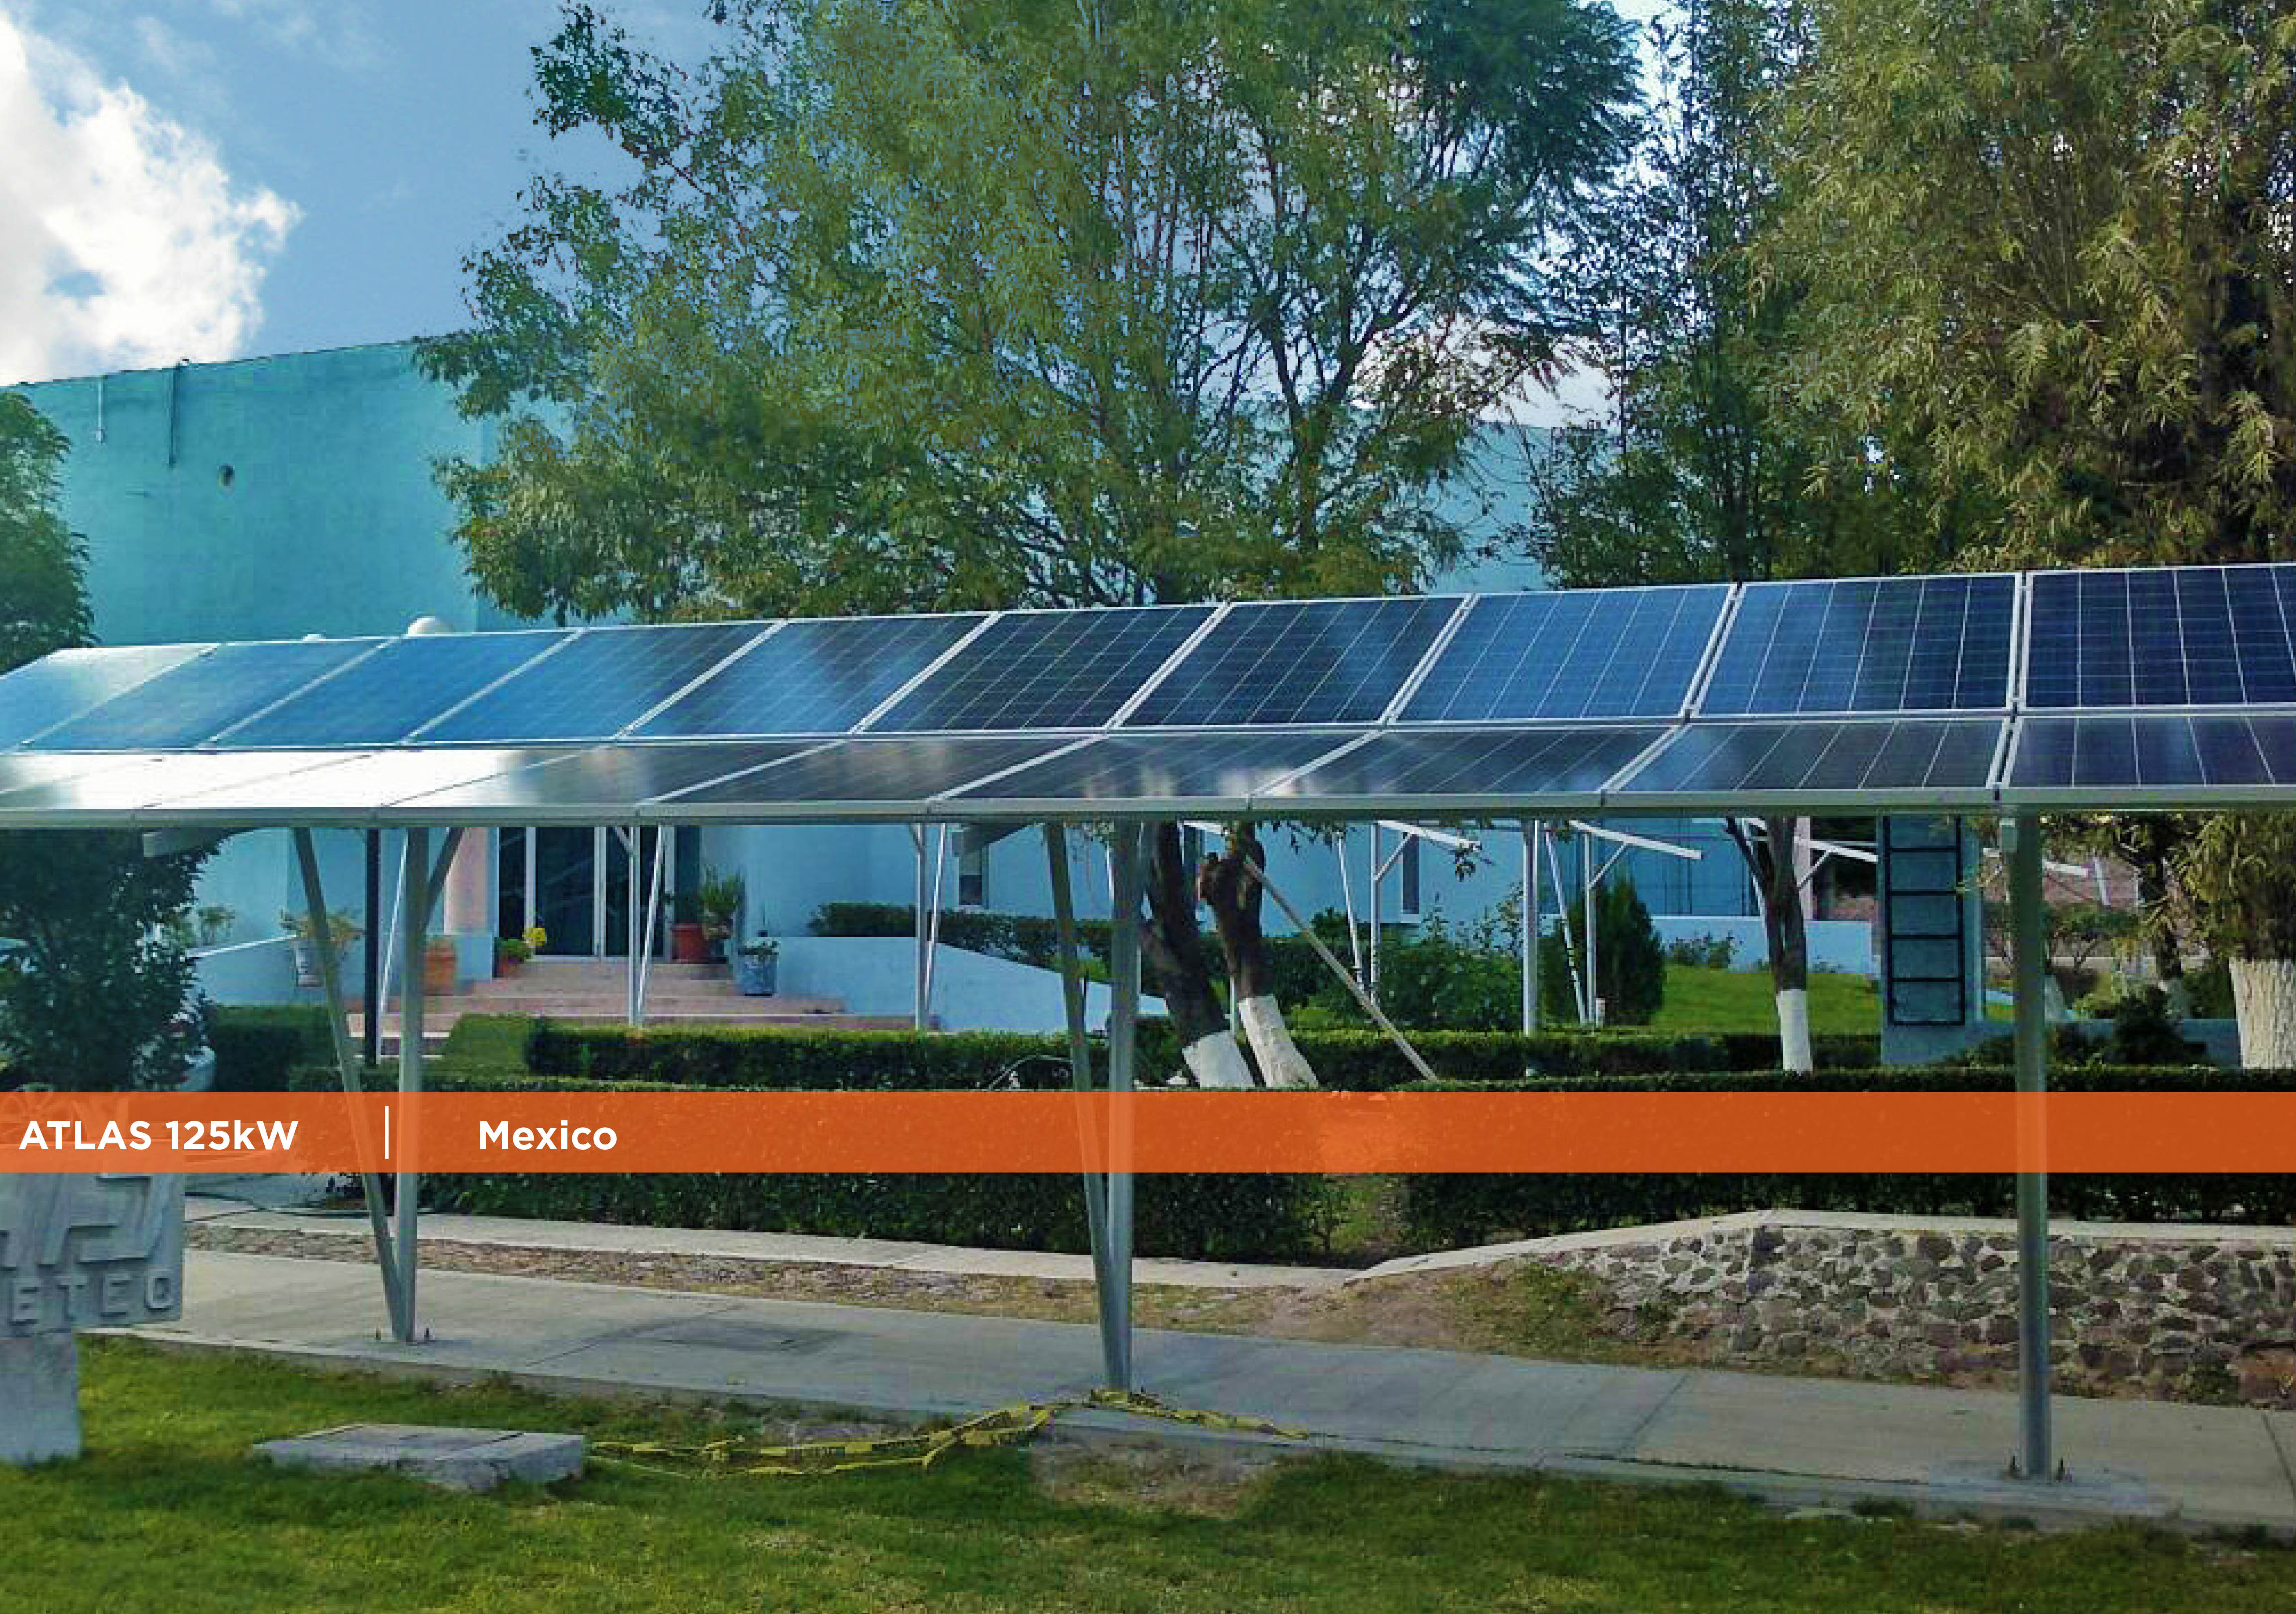 Symtech Solar - Newsletter January 2017-Atlas 125kW Mexico